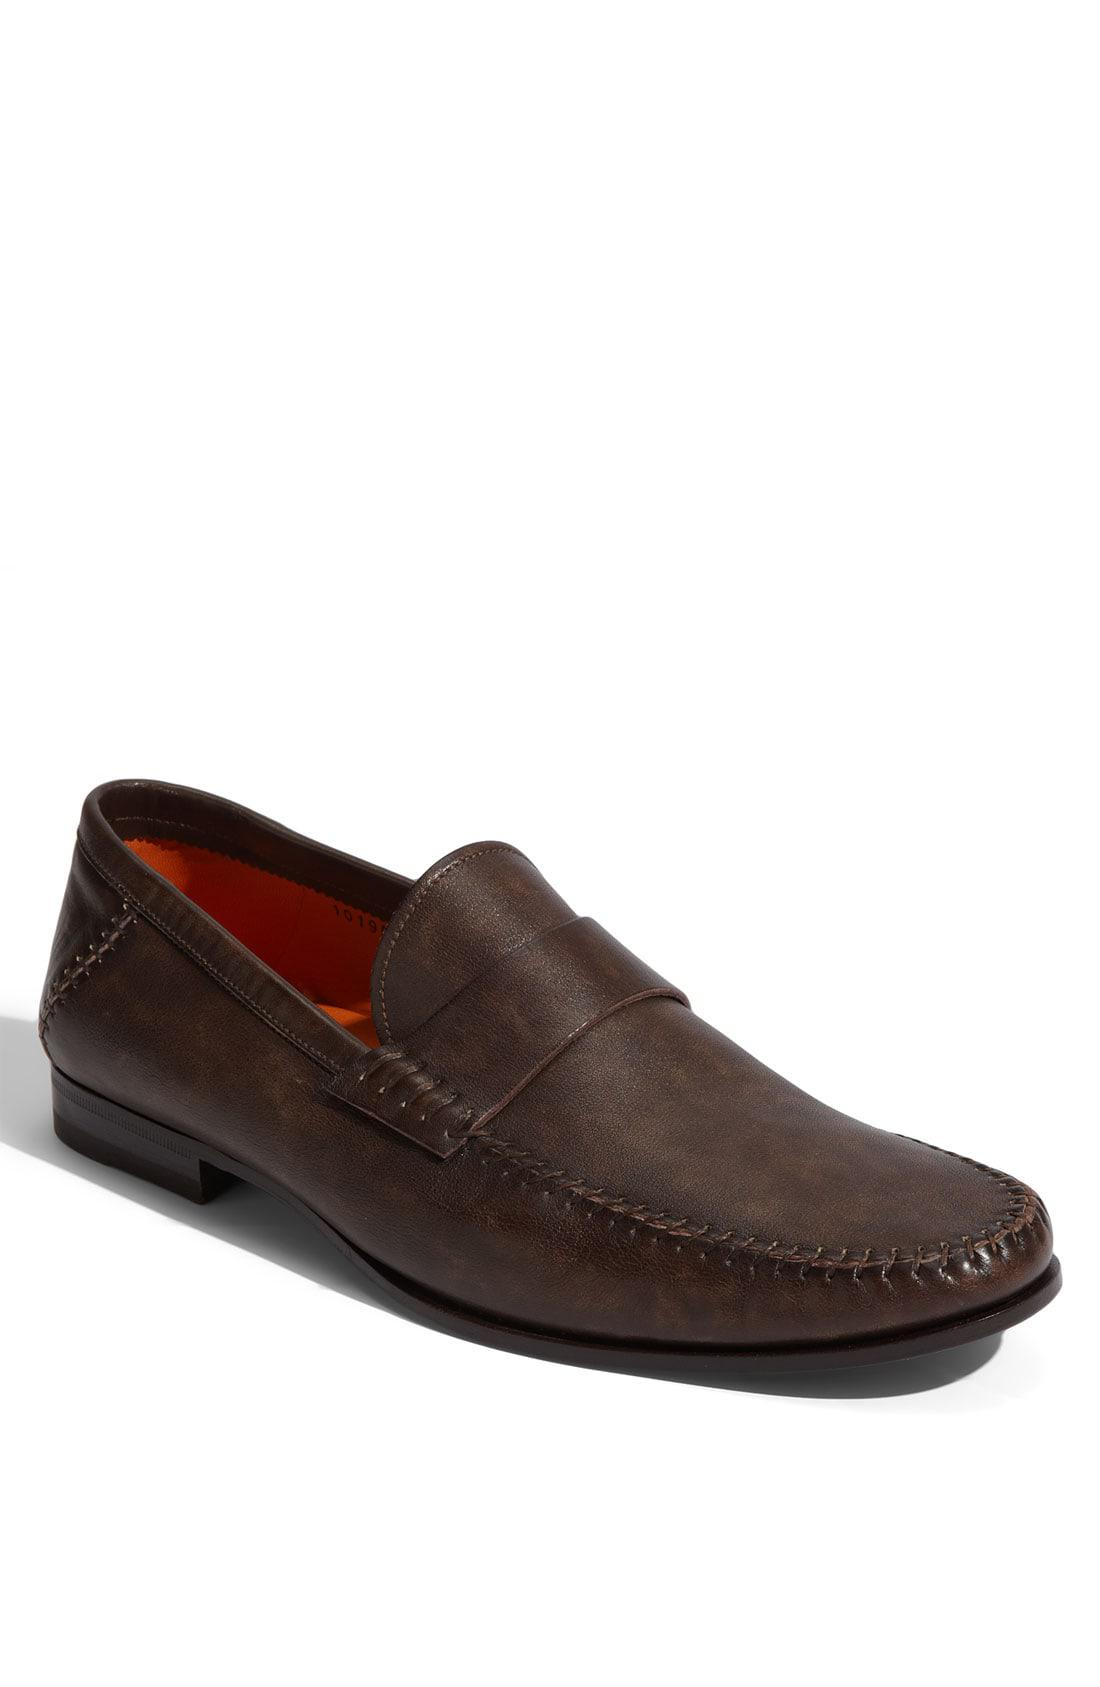 9dc58d63033 Lyst - Santoni Paine Loafer in Brown for Men